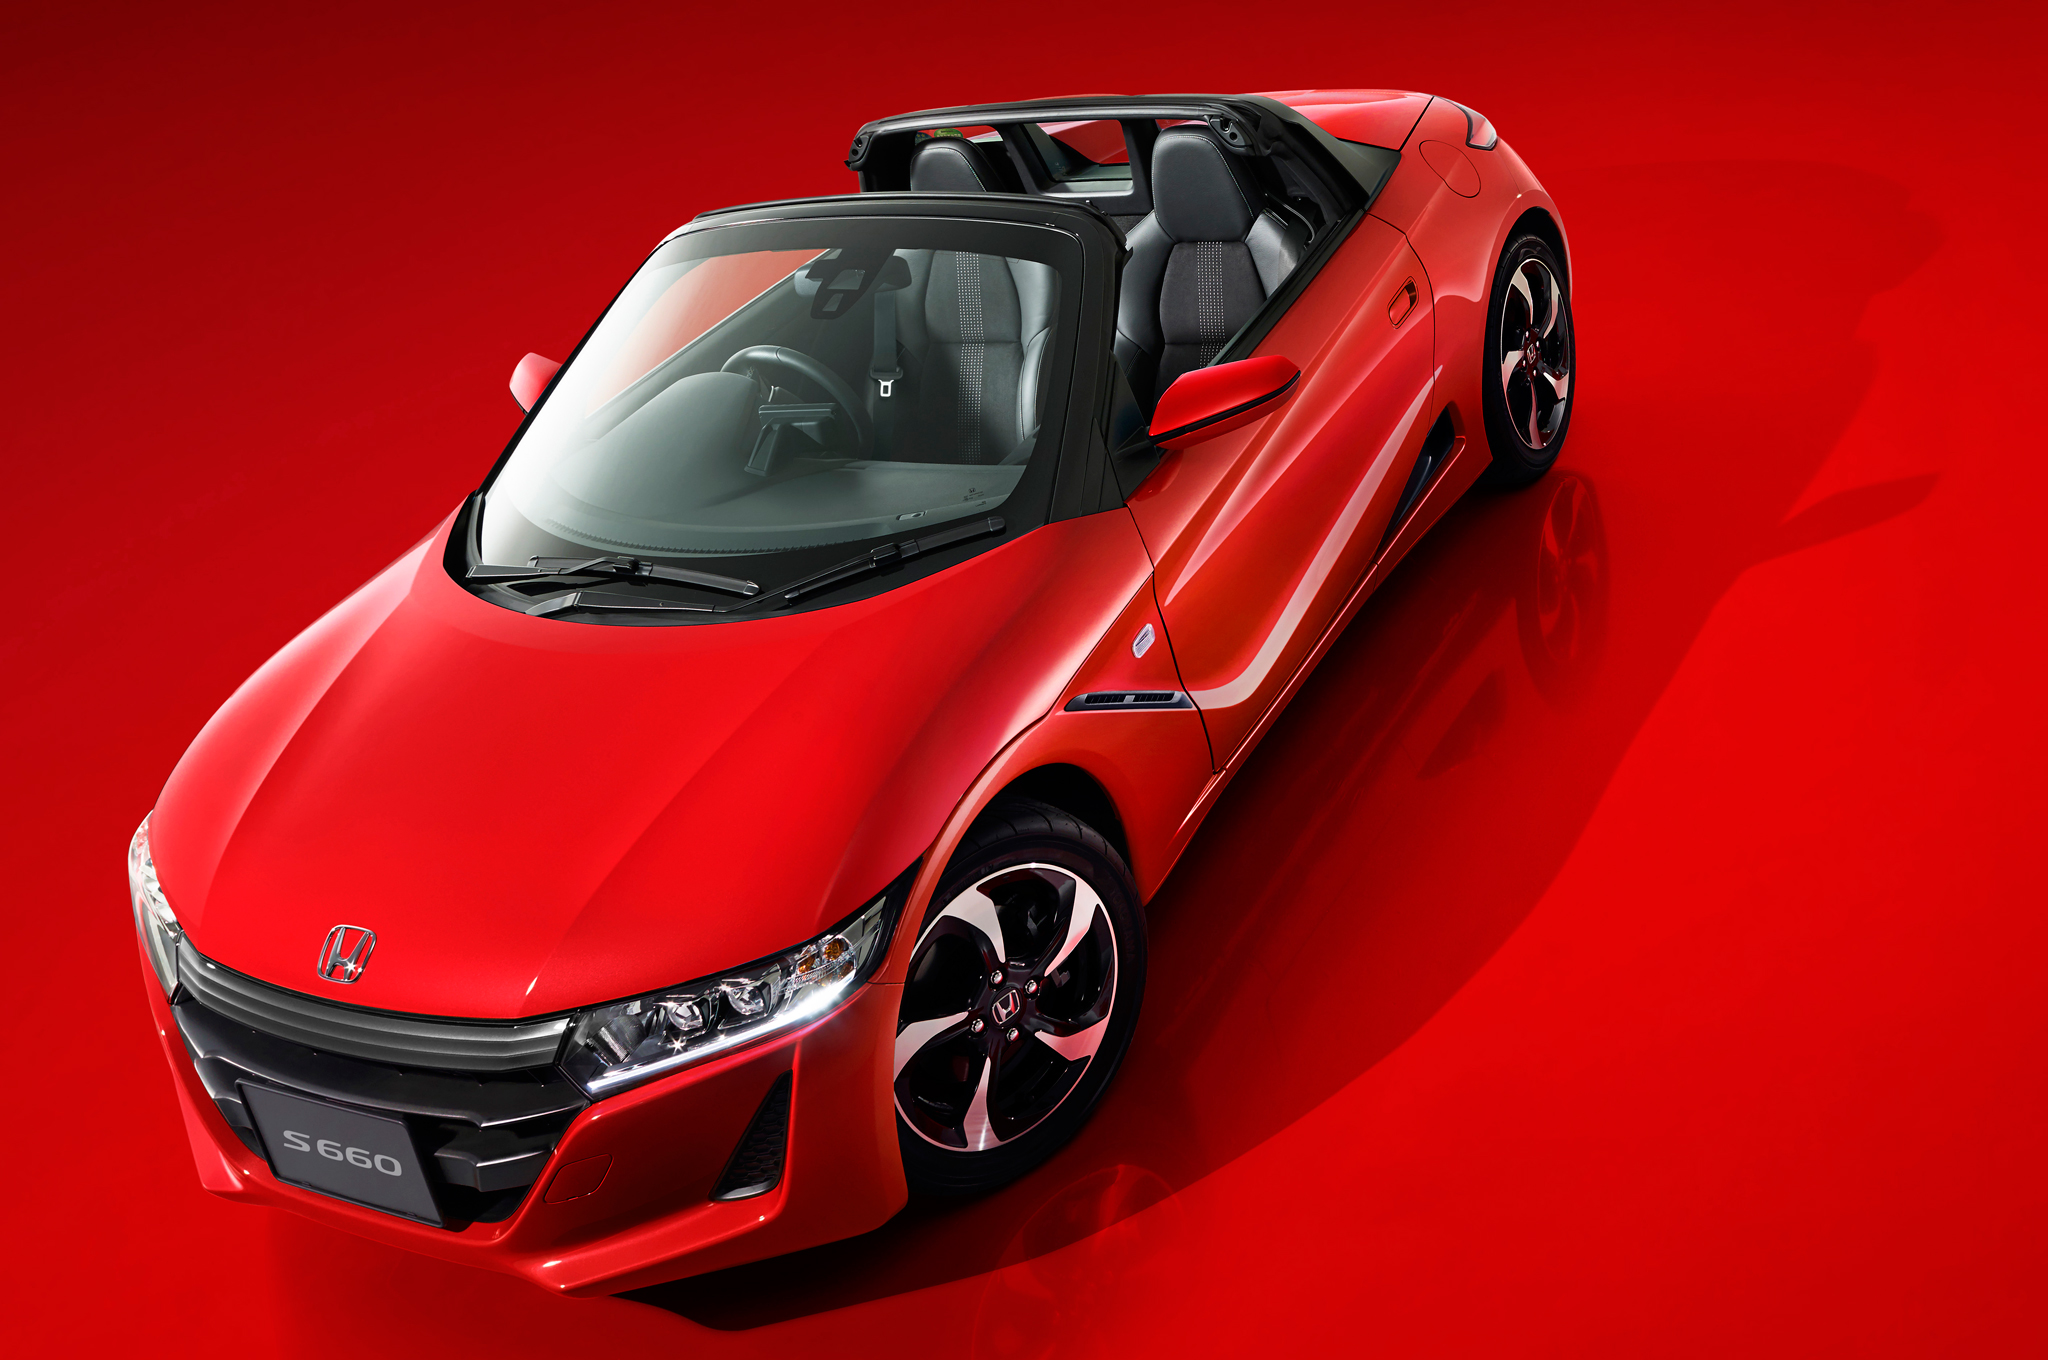 We Hear: More Powerful Honda S660 With Turbo 1.0L Gets Green Light